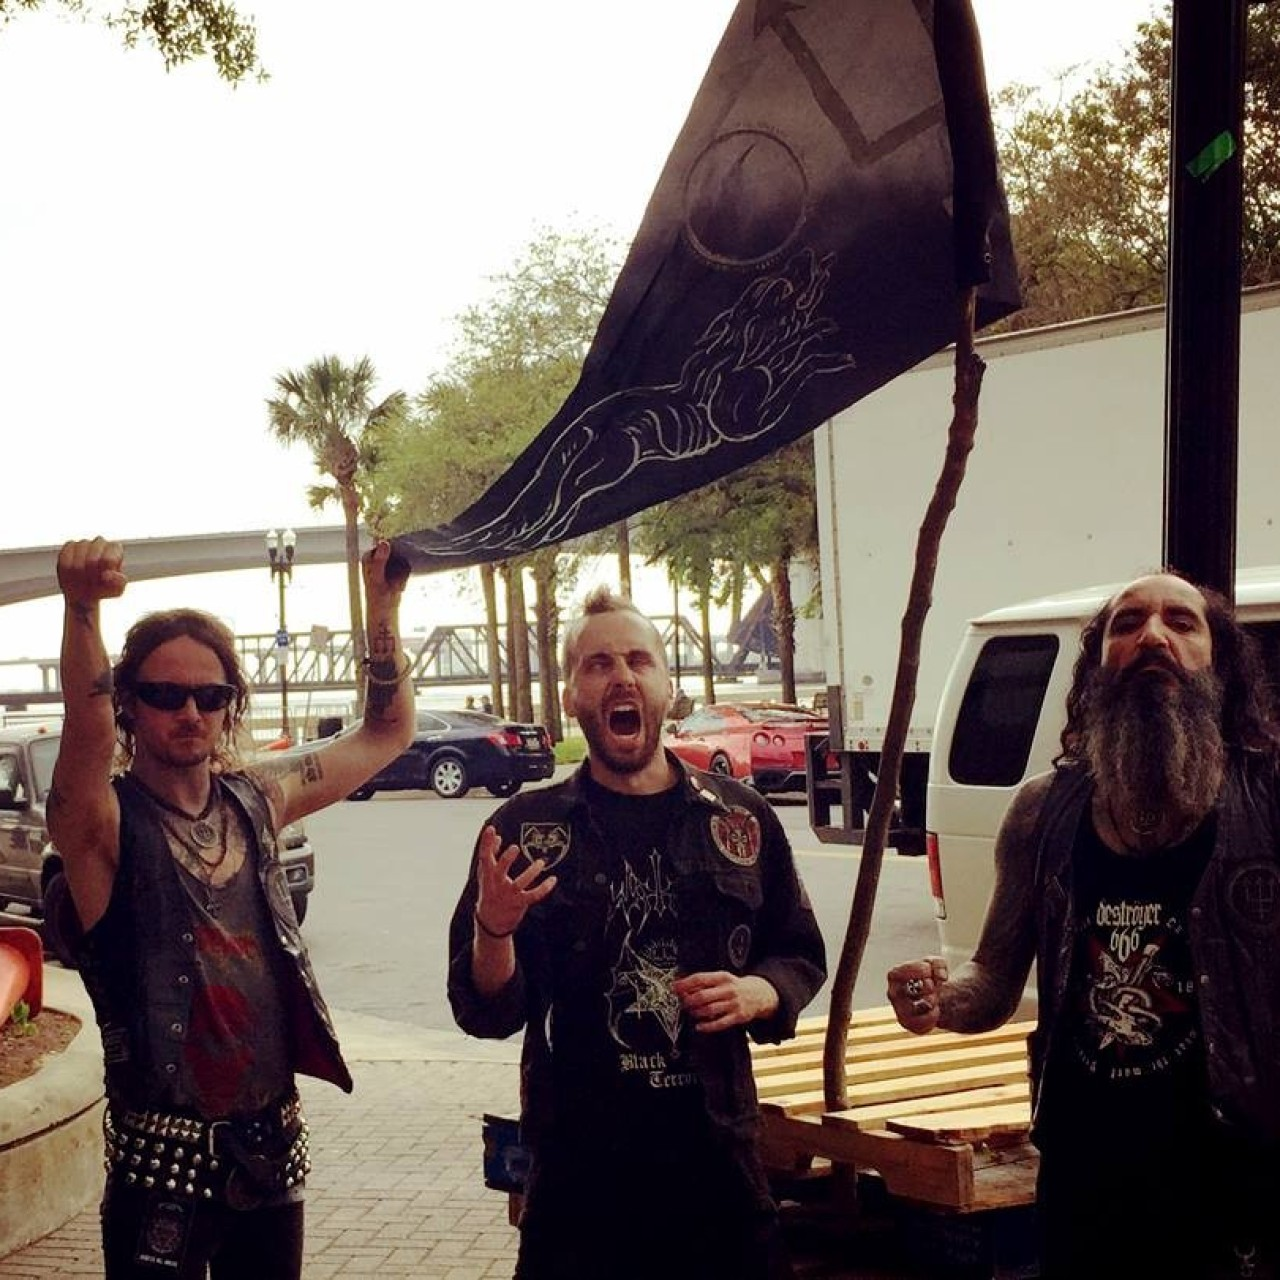 Metal band Watain hits back after Singapore bans its concert